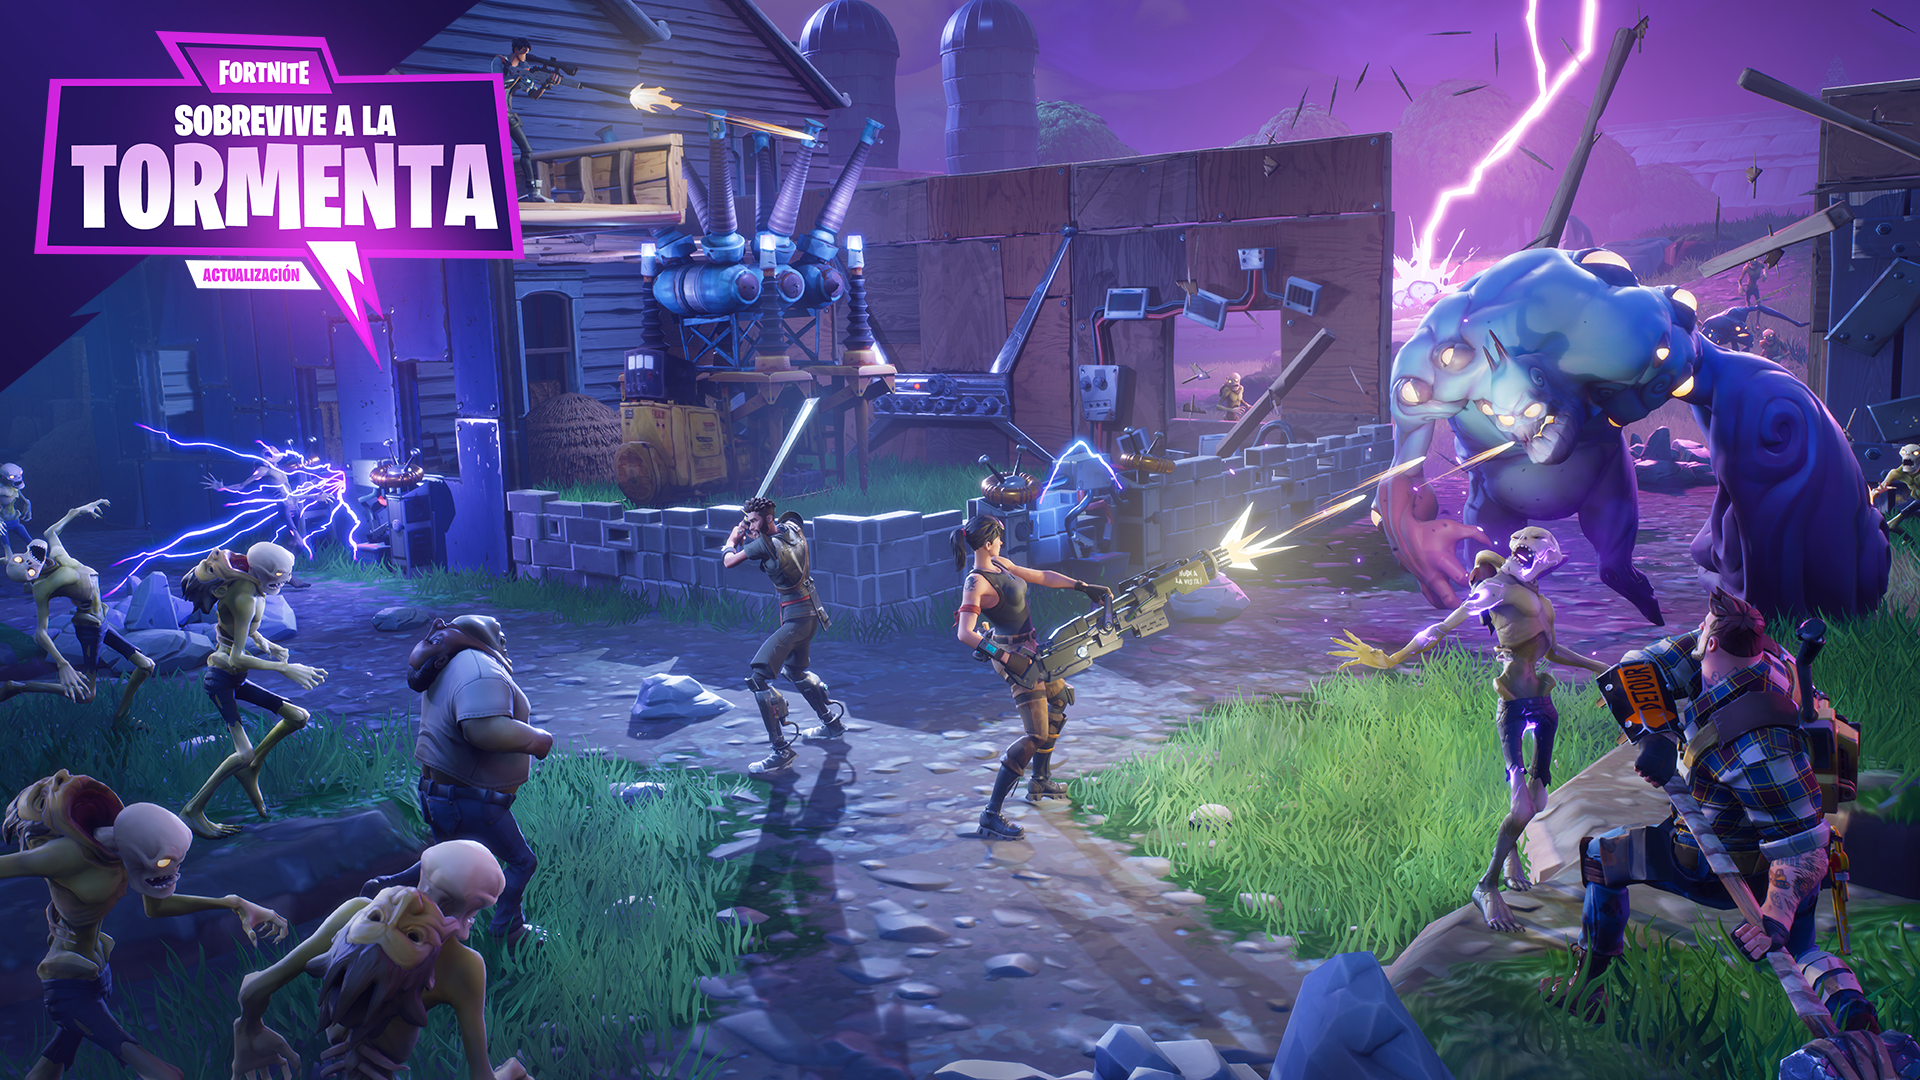 Fortnite%2Fblog%2Fsurvive-the-storm---release-notes%2FES_Survivor-Mode-Gameplay-1920x1080-b6c52f5f524a6c974166c66b87650e5315f548eb